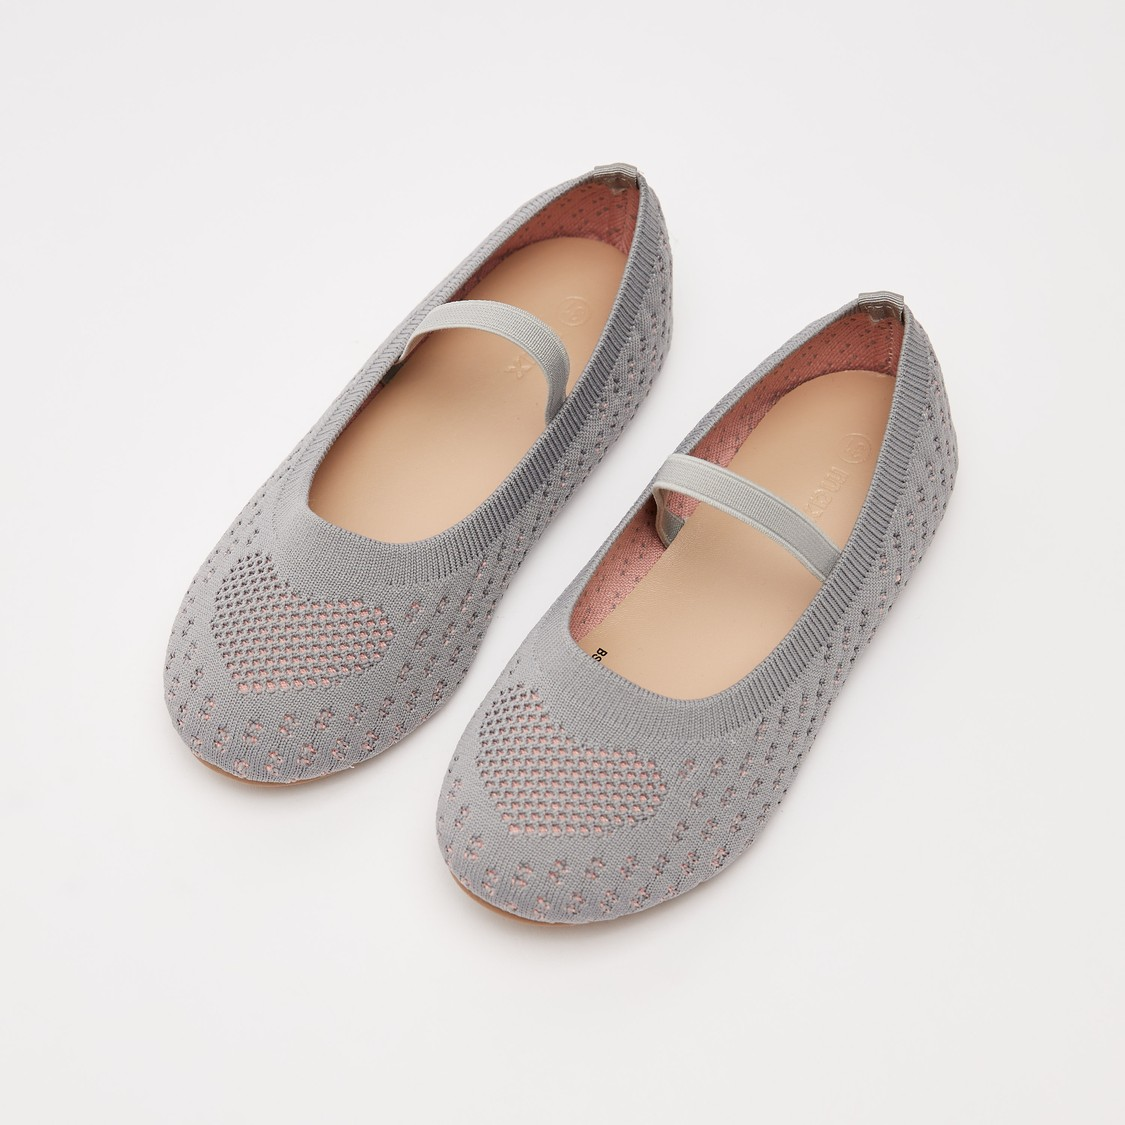 Textured Ballerinas with Heart Detail and Elasticised Strap